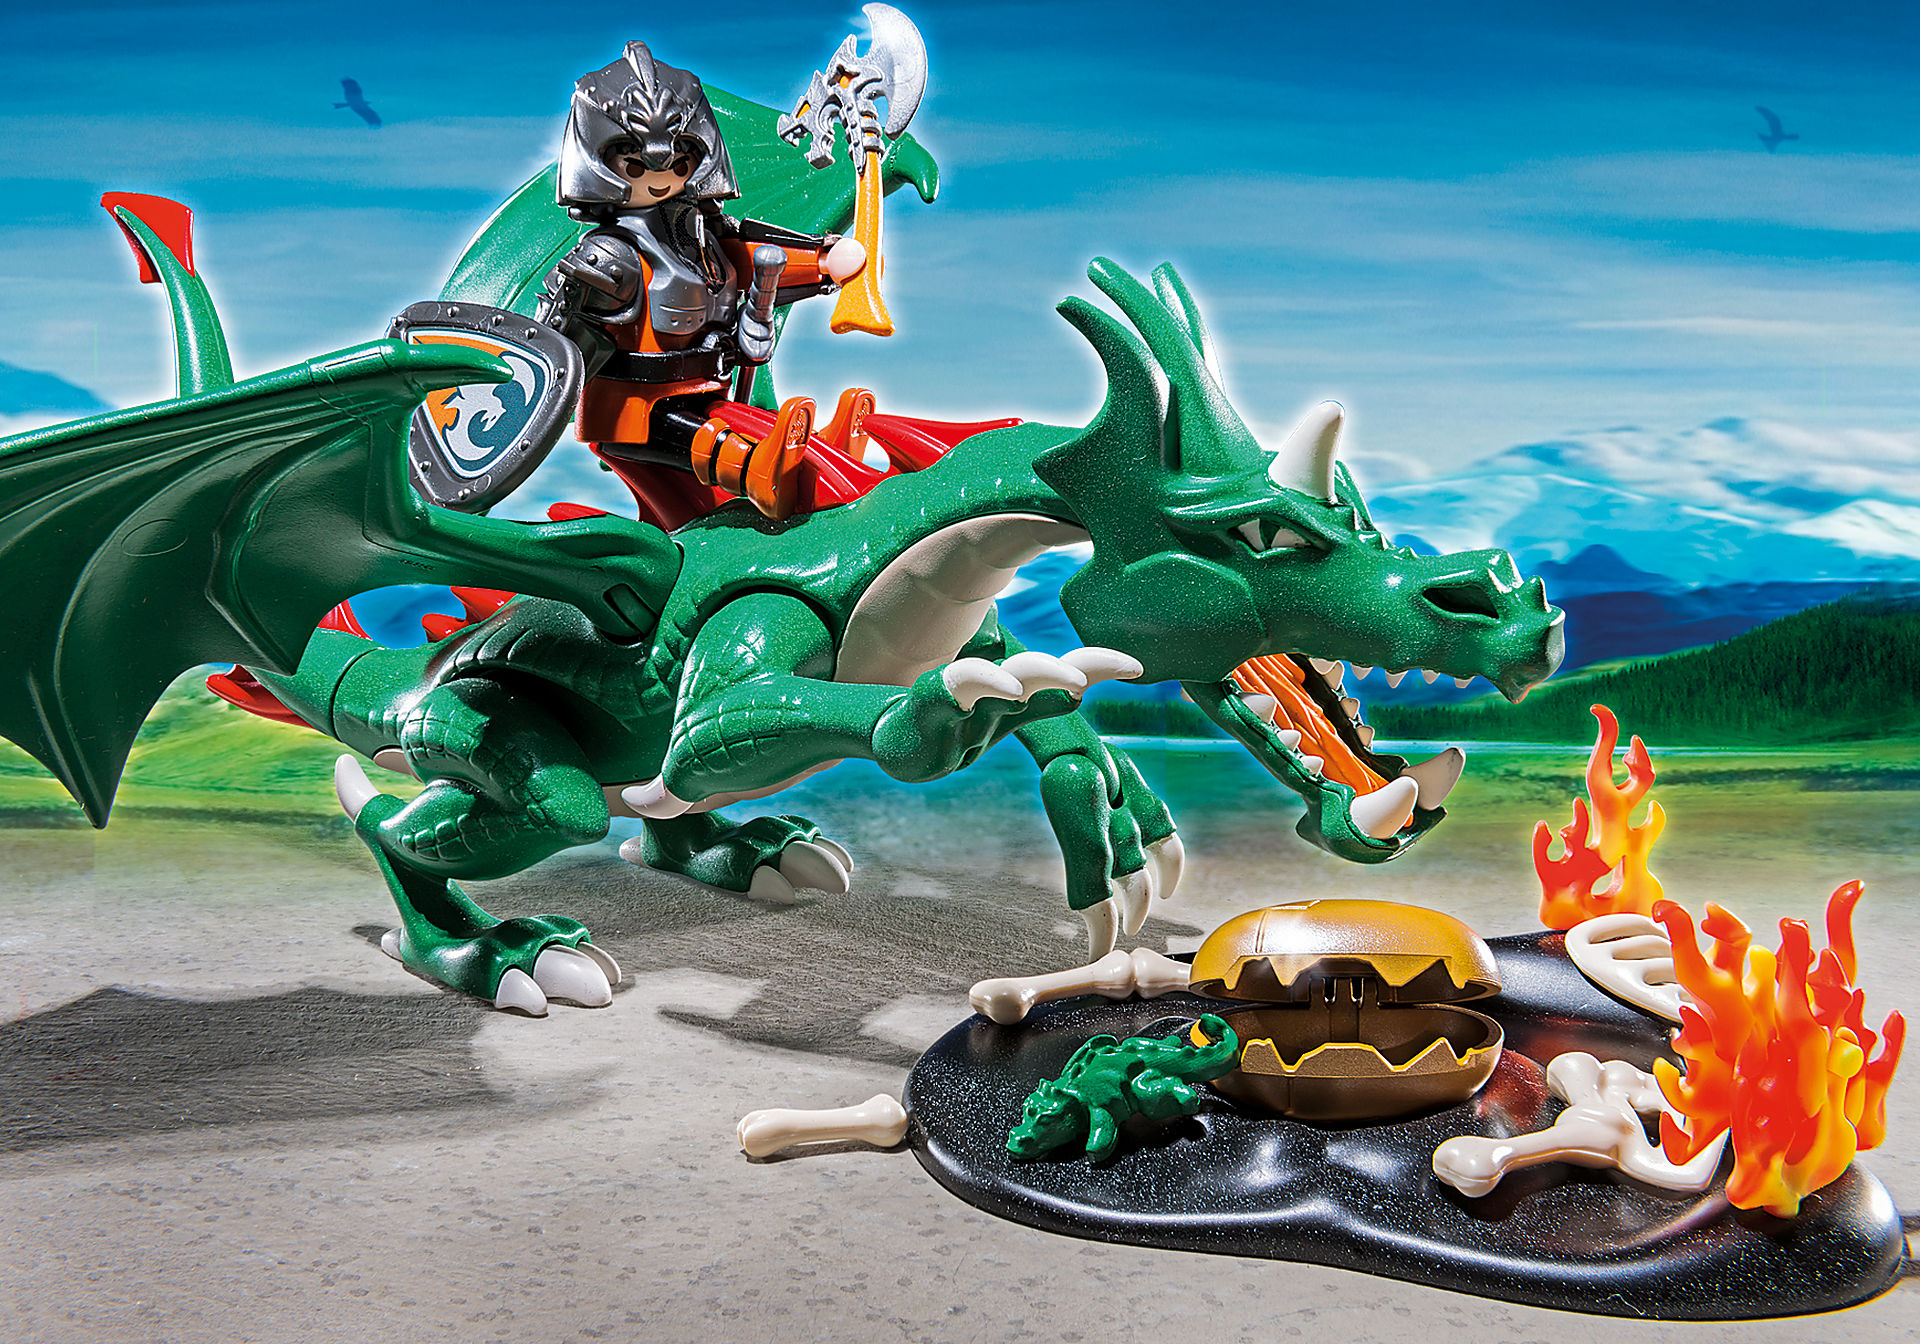 http://media.playmobil.com/i/playmobil/6003_product_extra1/Great Dragon